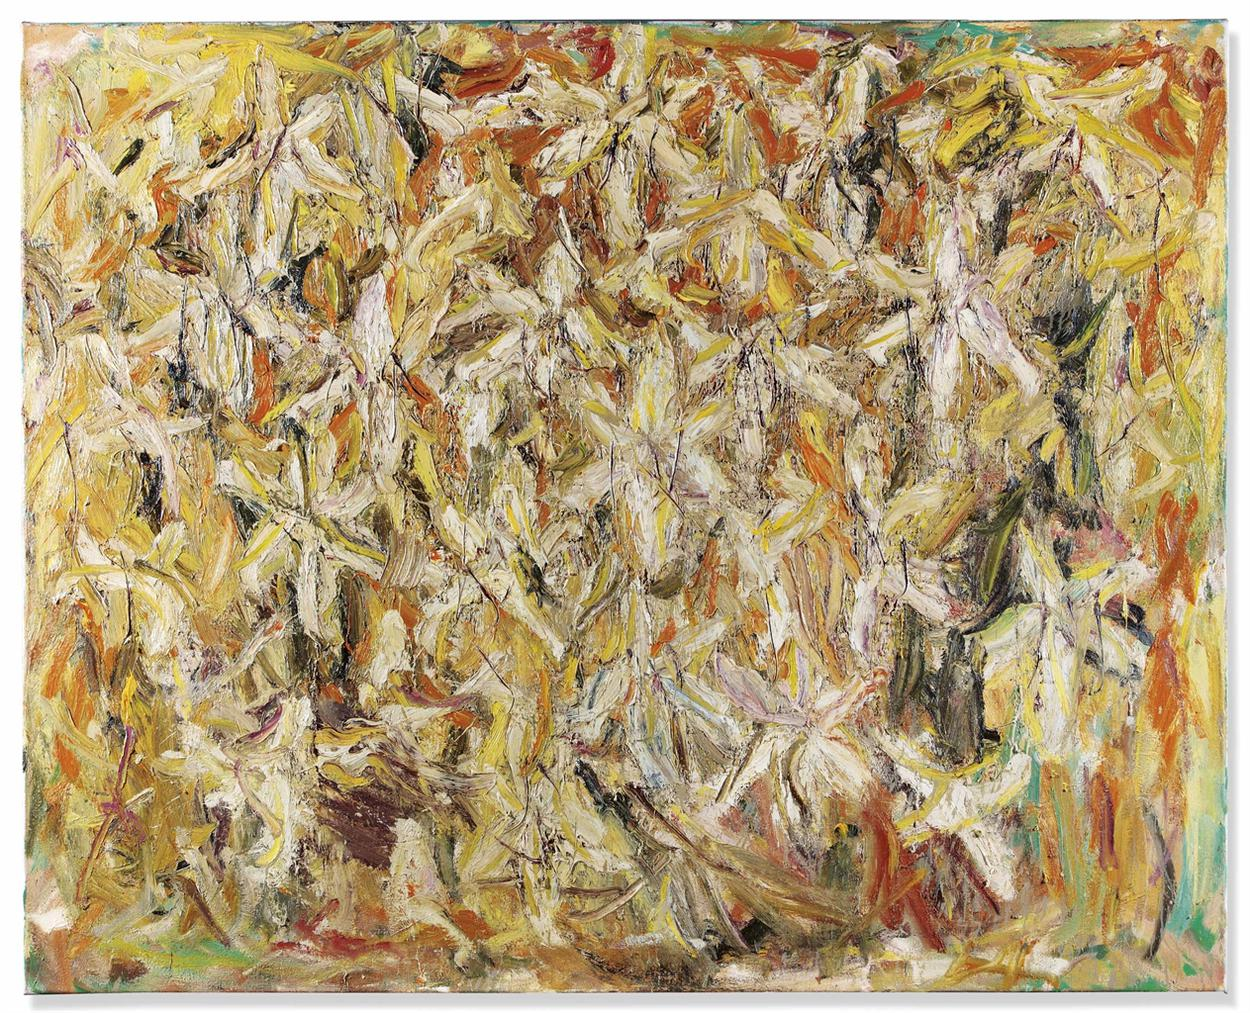 Marc Mulders-Witte Lelies/Herfst (White Lillies/Autumn)-1994